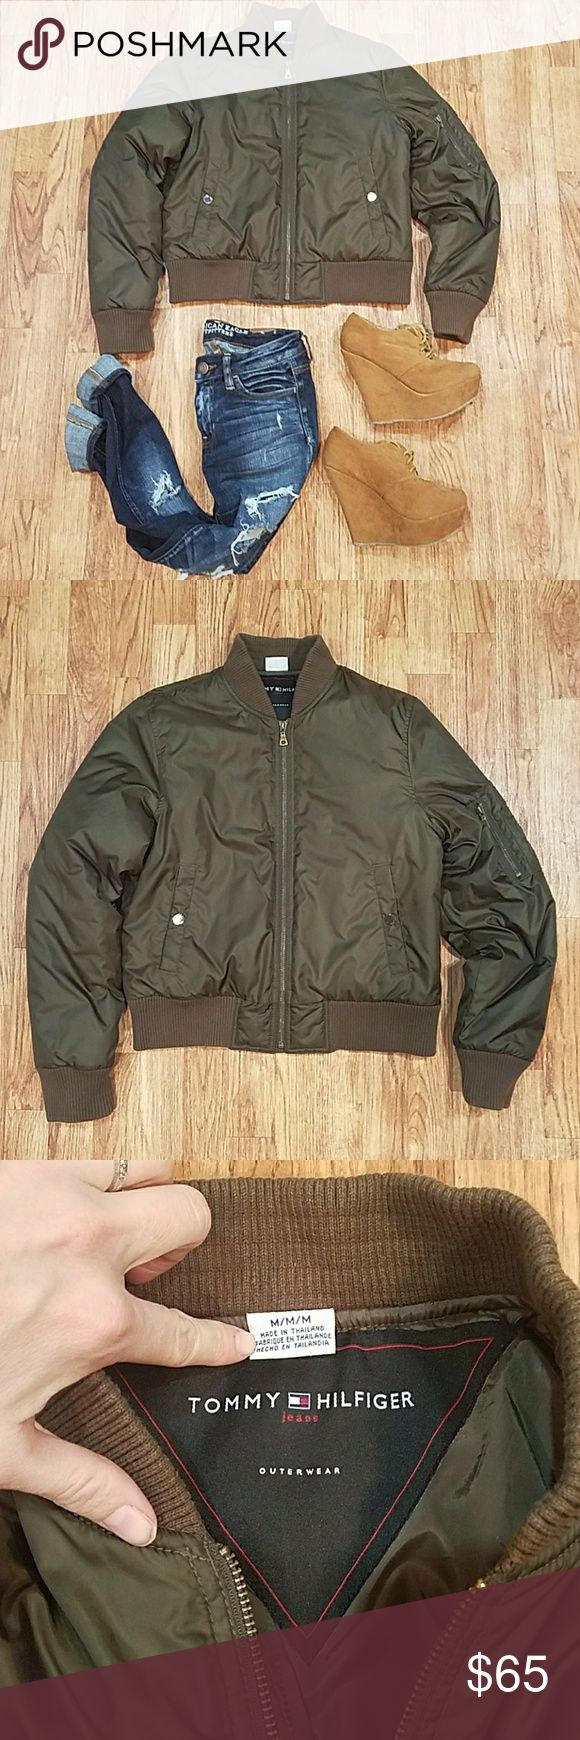 Tommy Hilfiger Army Green Puffer Bomber Jacket Great used condition!! Slight wear with very faint marks here and there. Freshly laundered and ready to wear! Small pin hole on the front from a deceptive pin that did not come with the coat (happy to include the pin 😉). In the correct light there is a line  in the fabric that goes around the jacket. Hard to picture, but it's not significant and I think it's always been there. In the last photo you can make it out under the shadow of my hand…